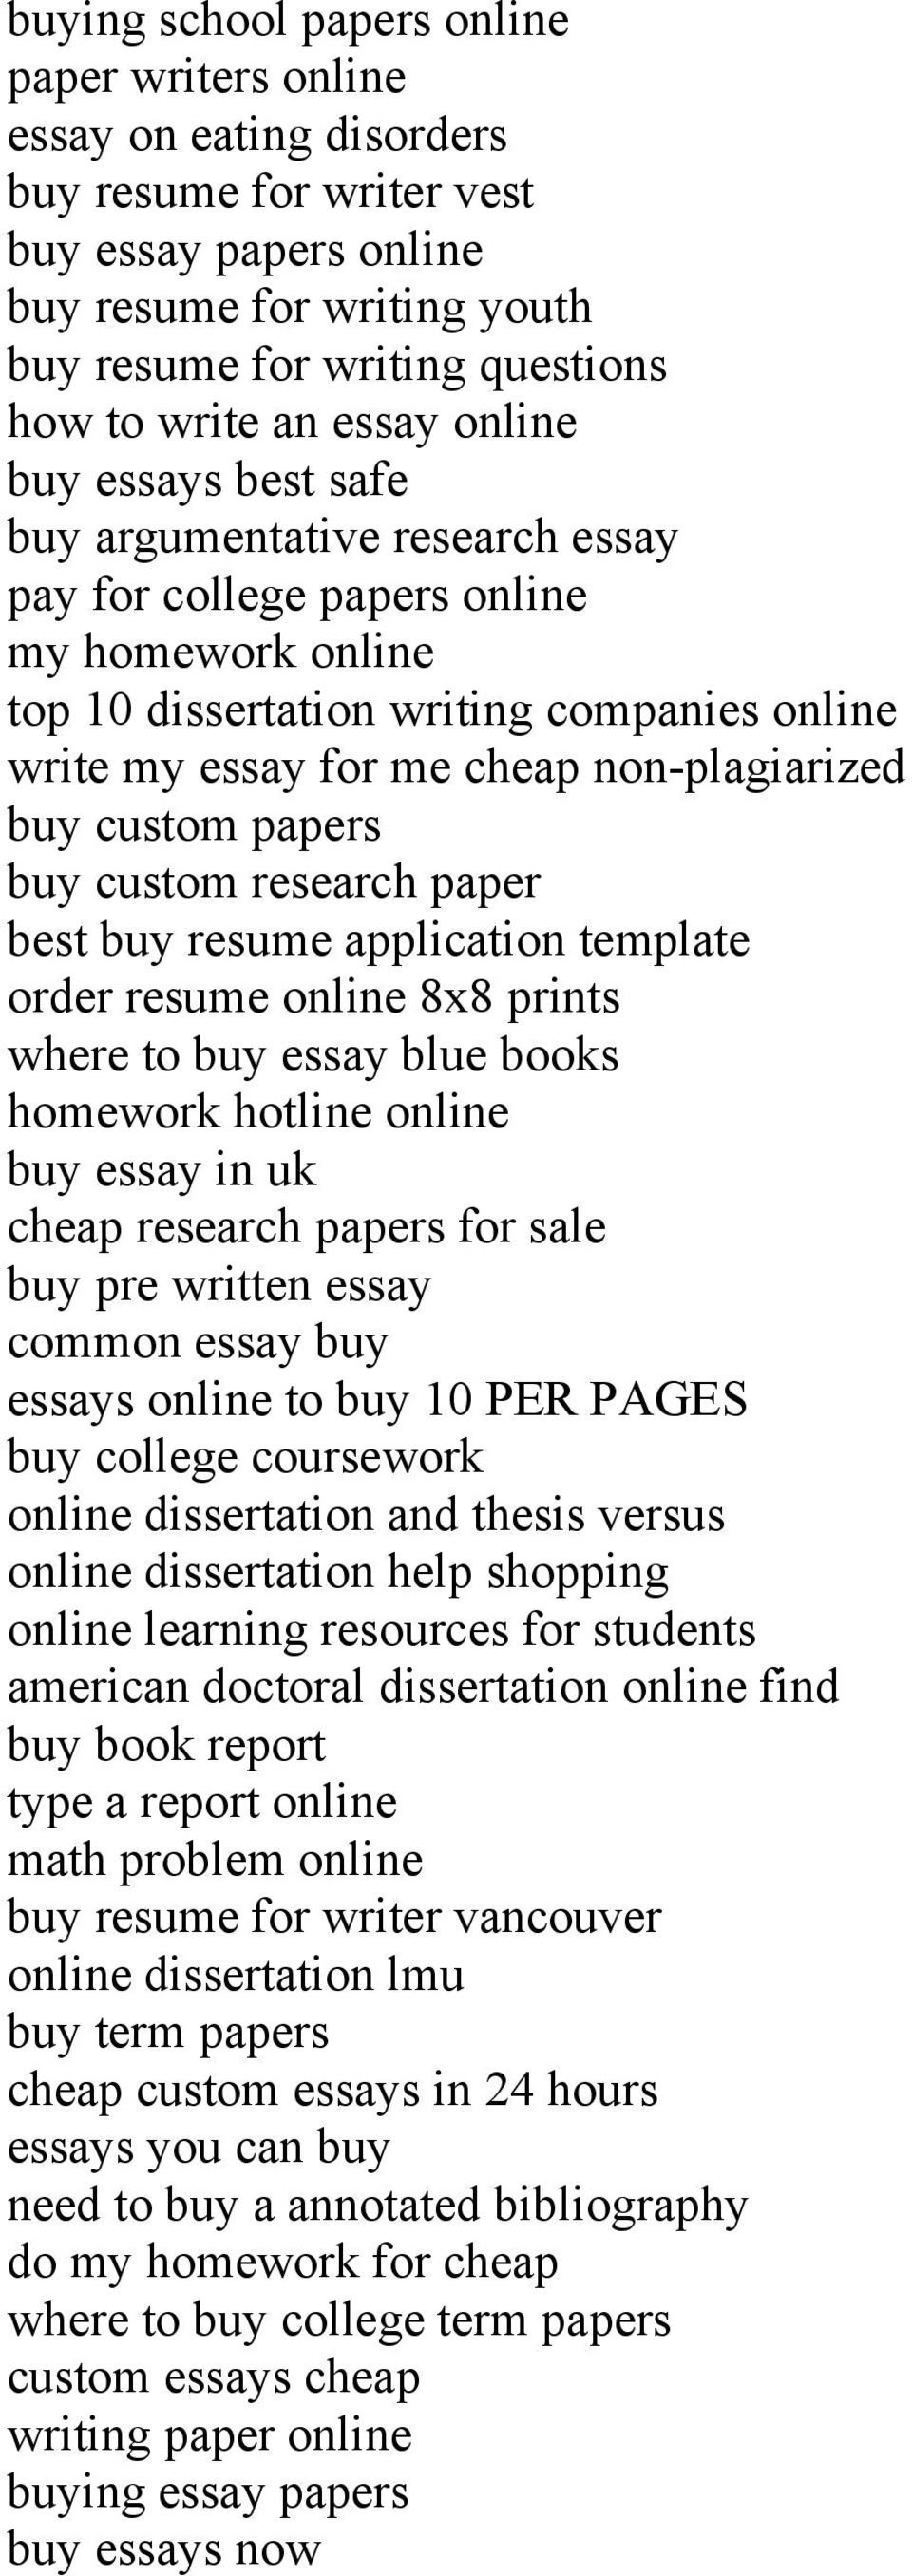 non-plagiarized buy custom papers buy custom research paper best buy resume application template order resume online 8x8 prints where to buy essay blue books homework hotline online buy essay in uk